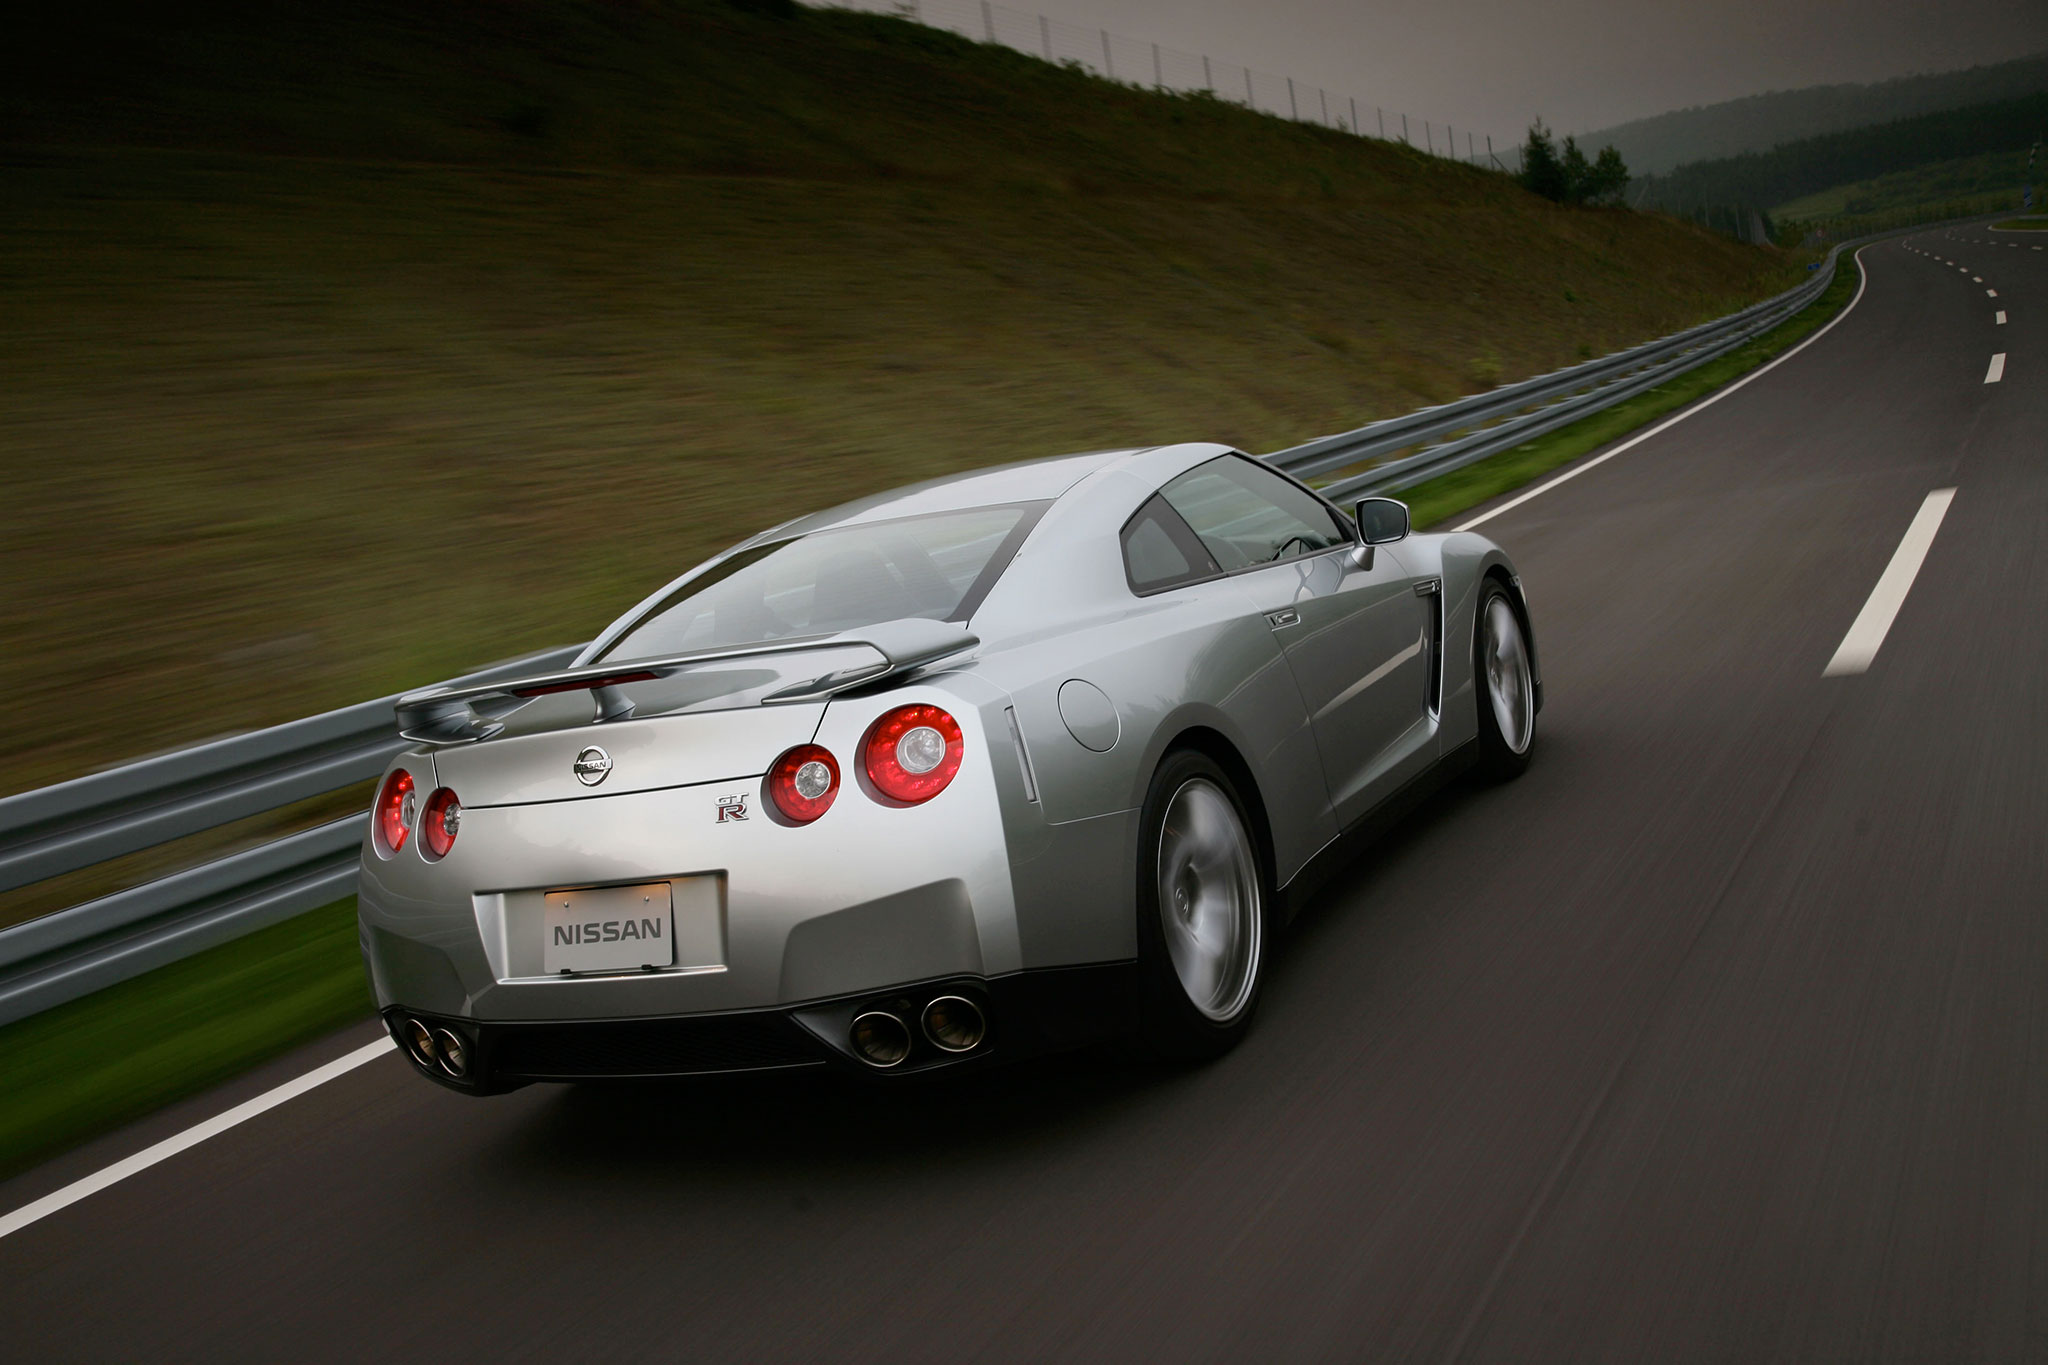 2010 nissan gt-r – four seasons wrap-up